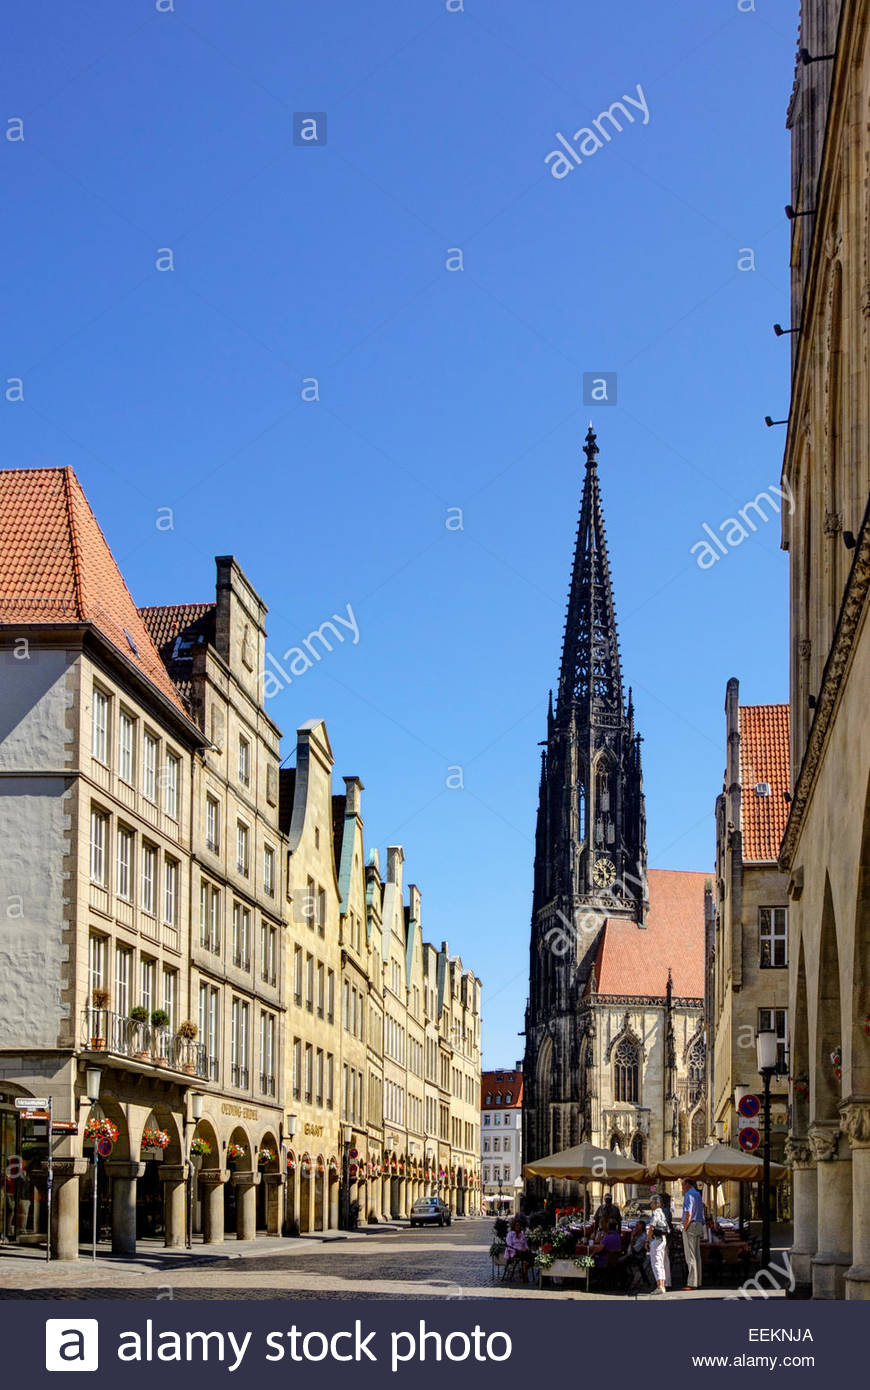 Sankt Lambertikirche stands at the end of Prinzipalmarkt in the old town section of Münster / Muenster, NRW, - Stock Image